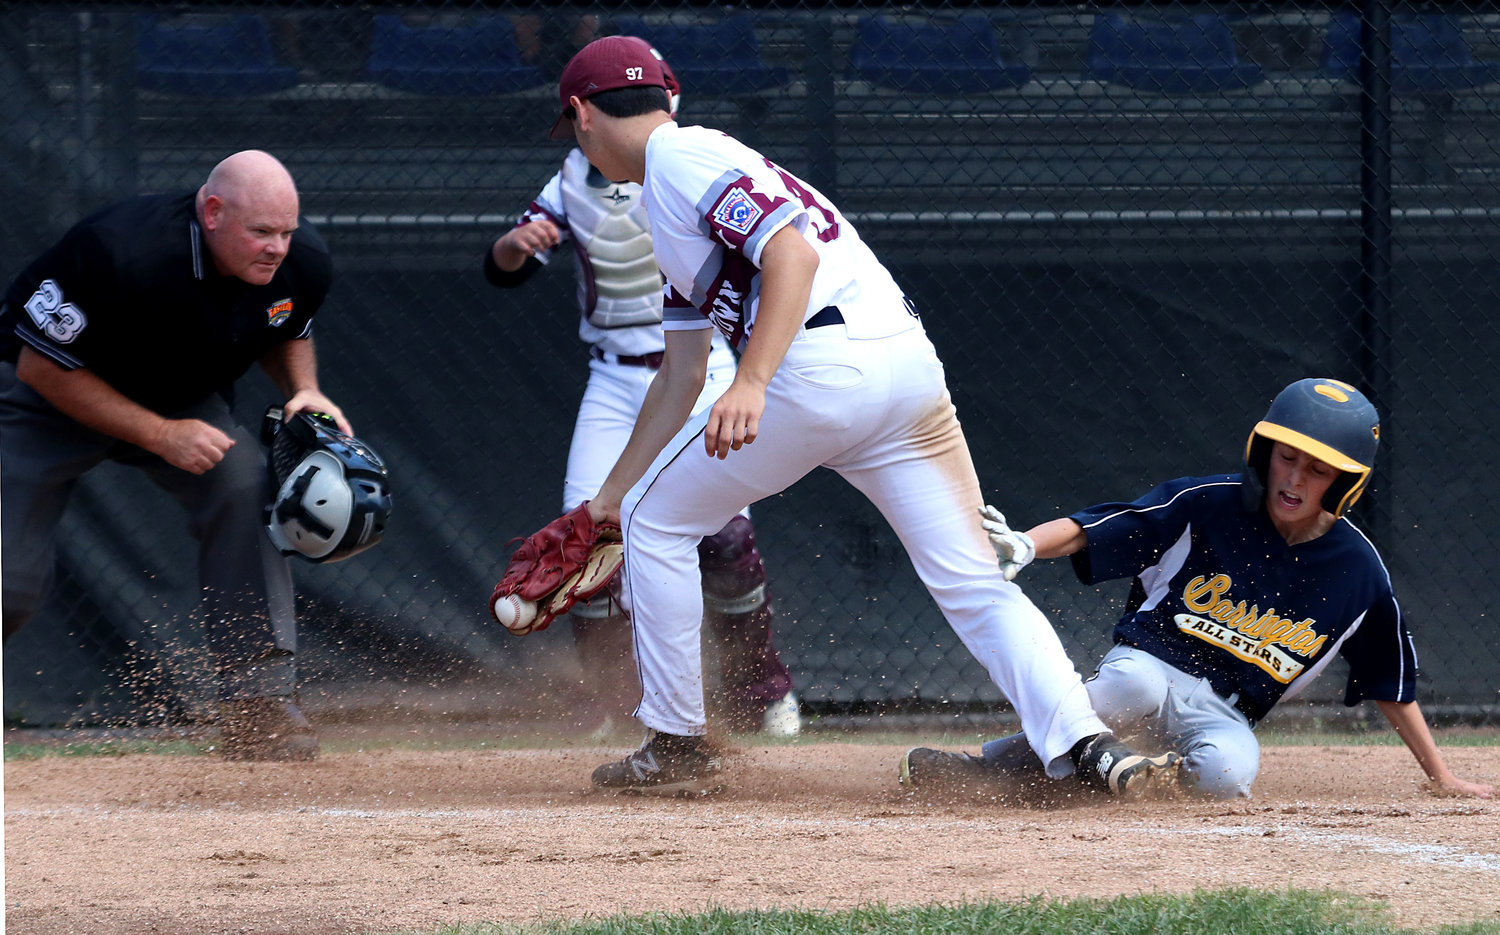 Chase Watts steals home plate after a passed ball to tie the score at 2-2 in the fourth inning.